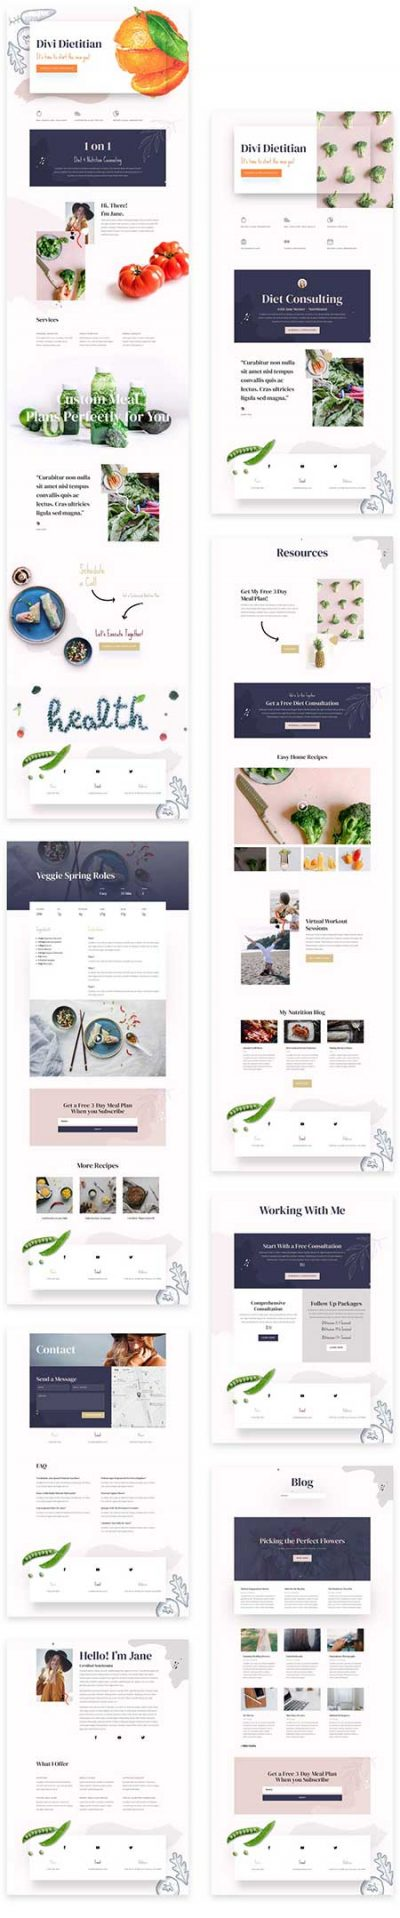 Divi dietitian website layouts